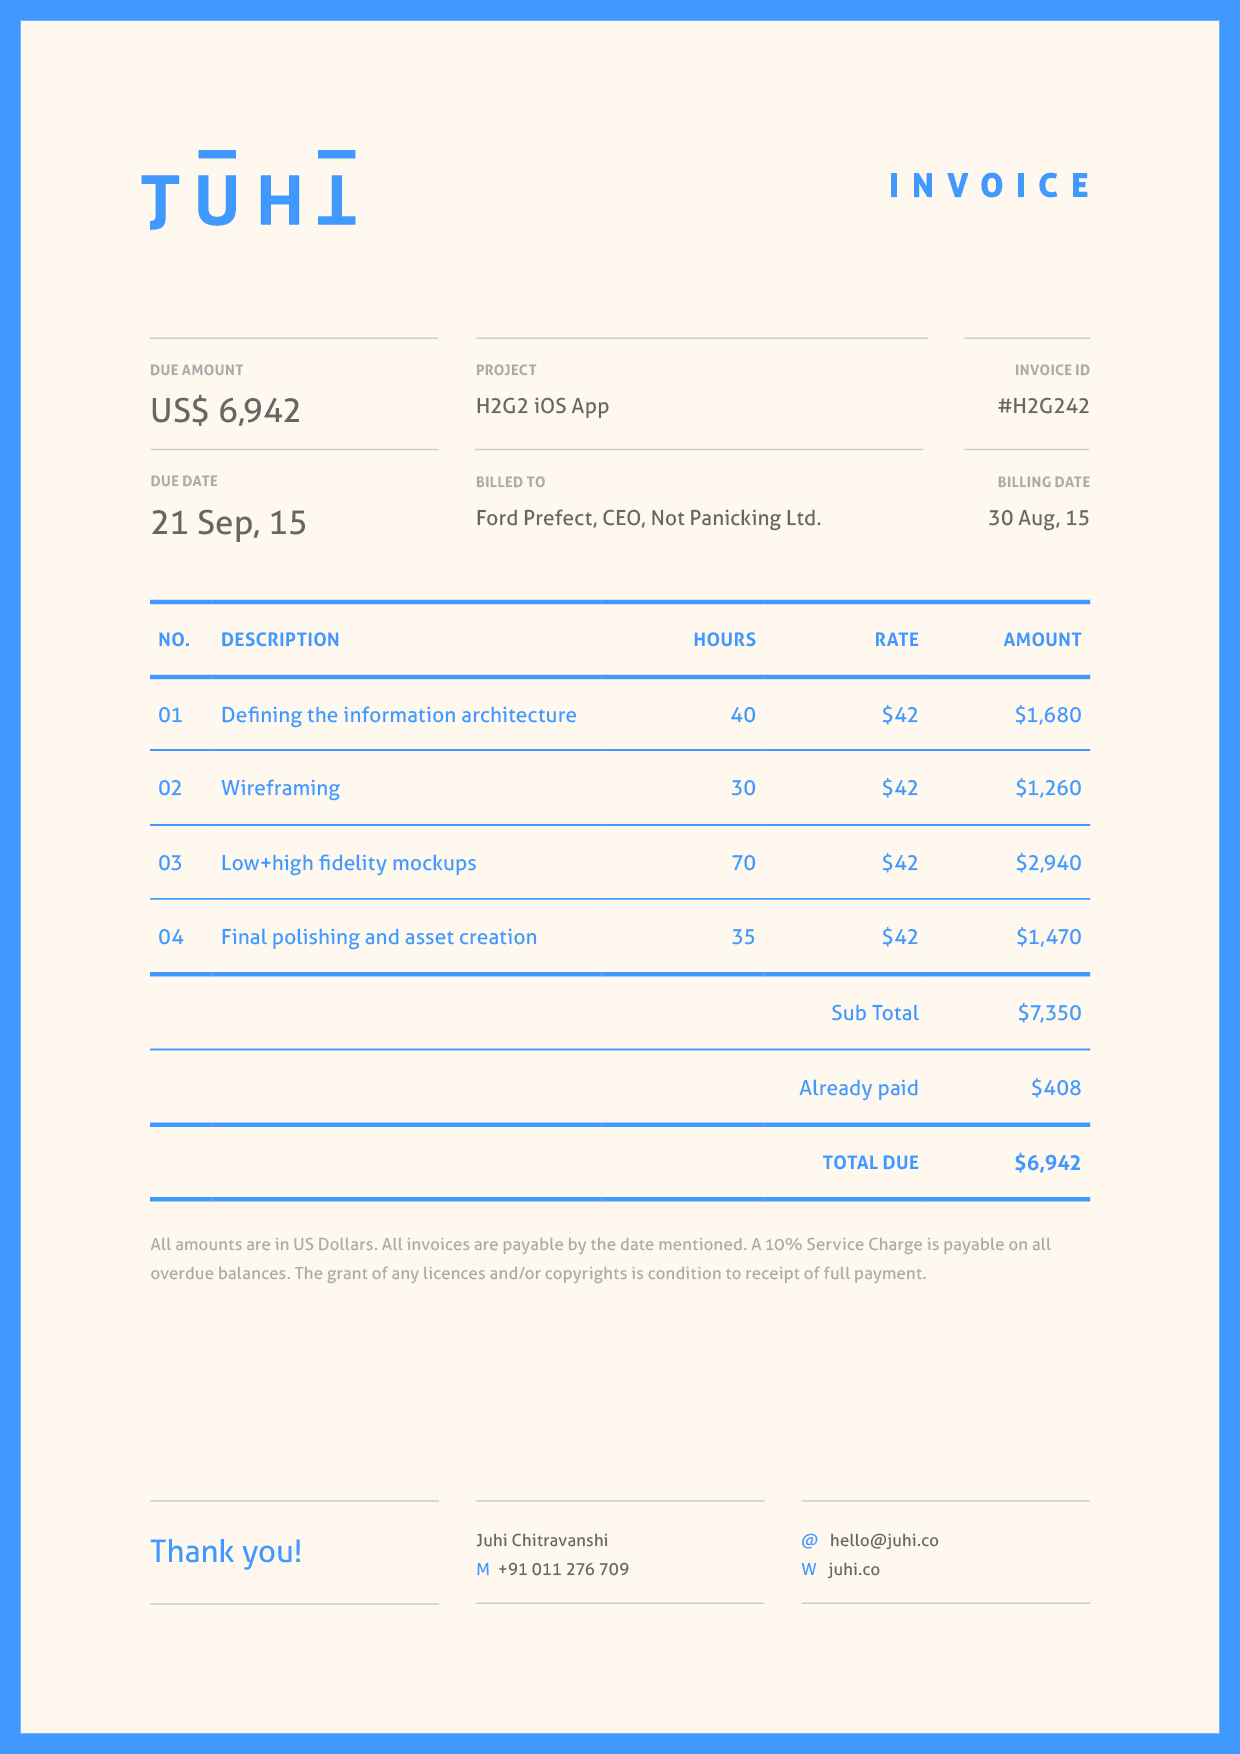 Usdgus  Pleasant Dont Hold Back On Your Invoice  Inspiring Designs  With Likable Invoice By Juhi Chitravanshi Follow With Breathtaking What Is Sales Invoice Also Invoice Estimate In Addition Invoice Software Review And Free Printable Invoice Template Pdf As Well As Paypal Invoice Api Additionally Freelance Designer Invoice Template From Inspirationfeedcom With Usdgus  Likable Dont Hold Back On Your Invoice  Inspiring Designs  With Breathtaking Invoice By Juhi Chitravanshi Follow And Pleasant What Is Sales Invoice Also Invoice Estimate In Addition Invoice Software Review From Inspirationfeedcom